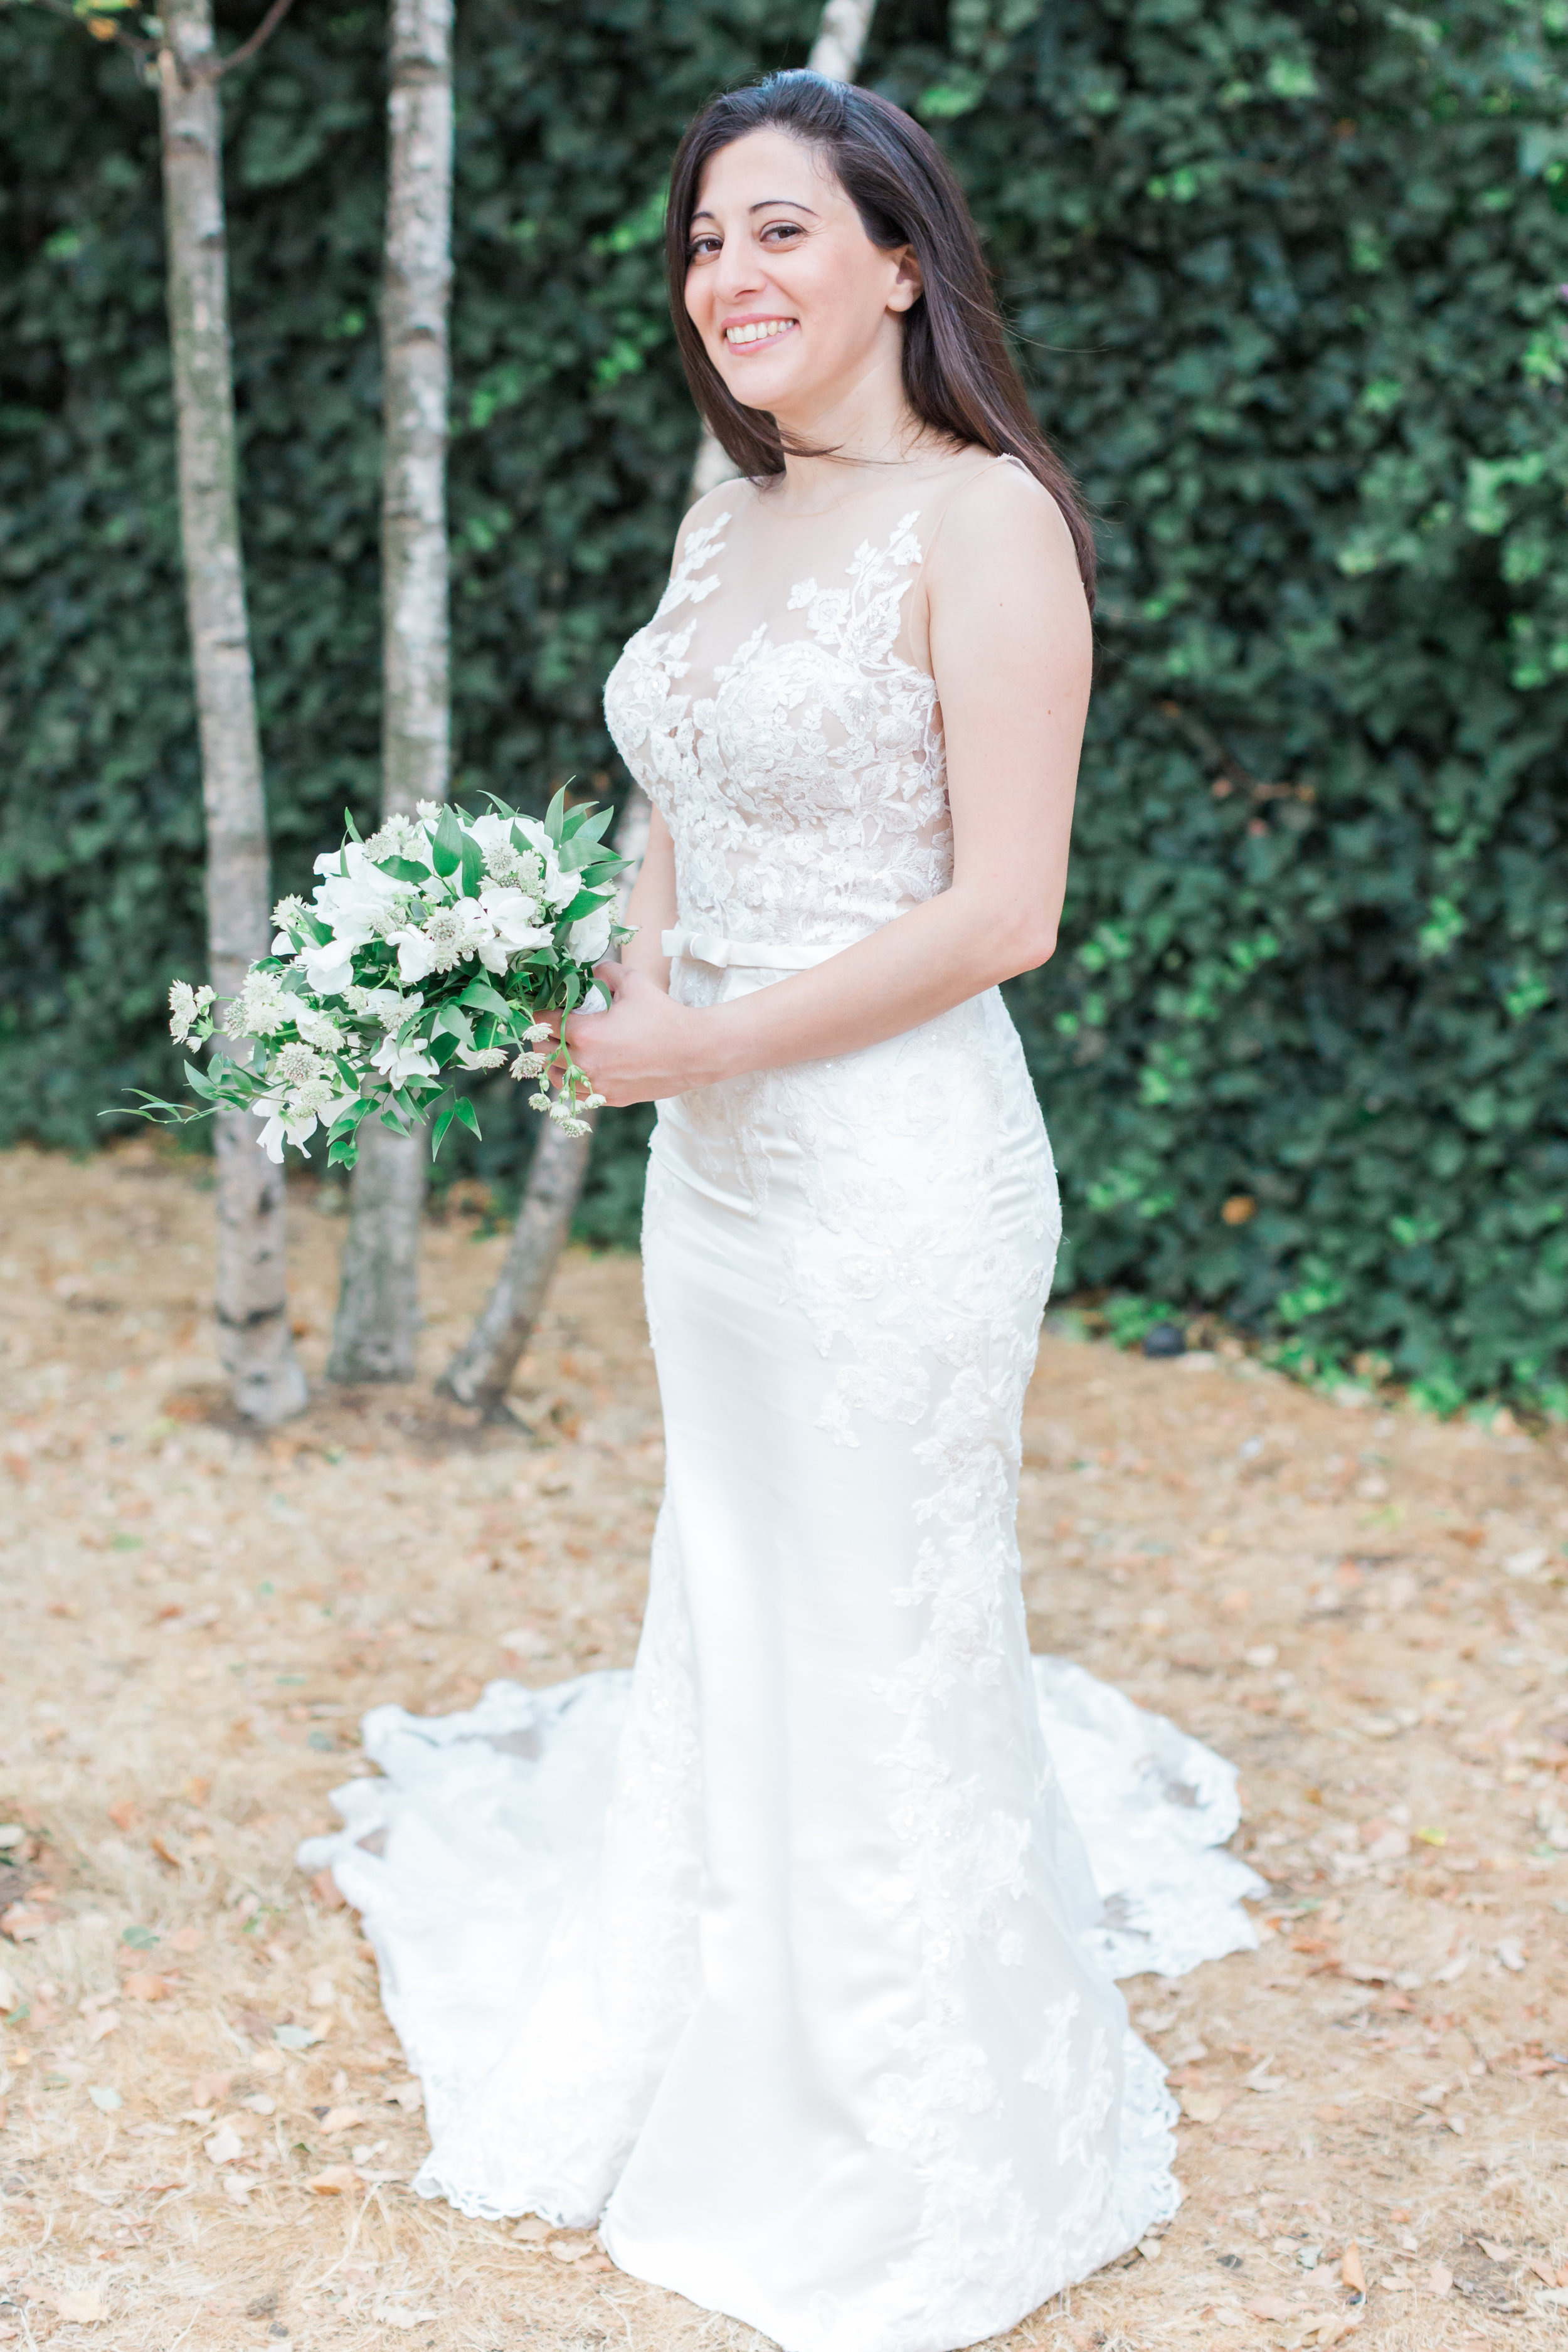 green-and-white-bouquet.jpg